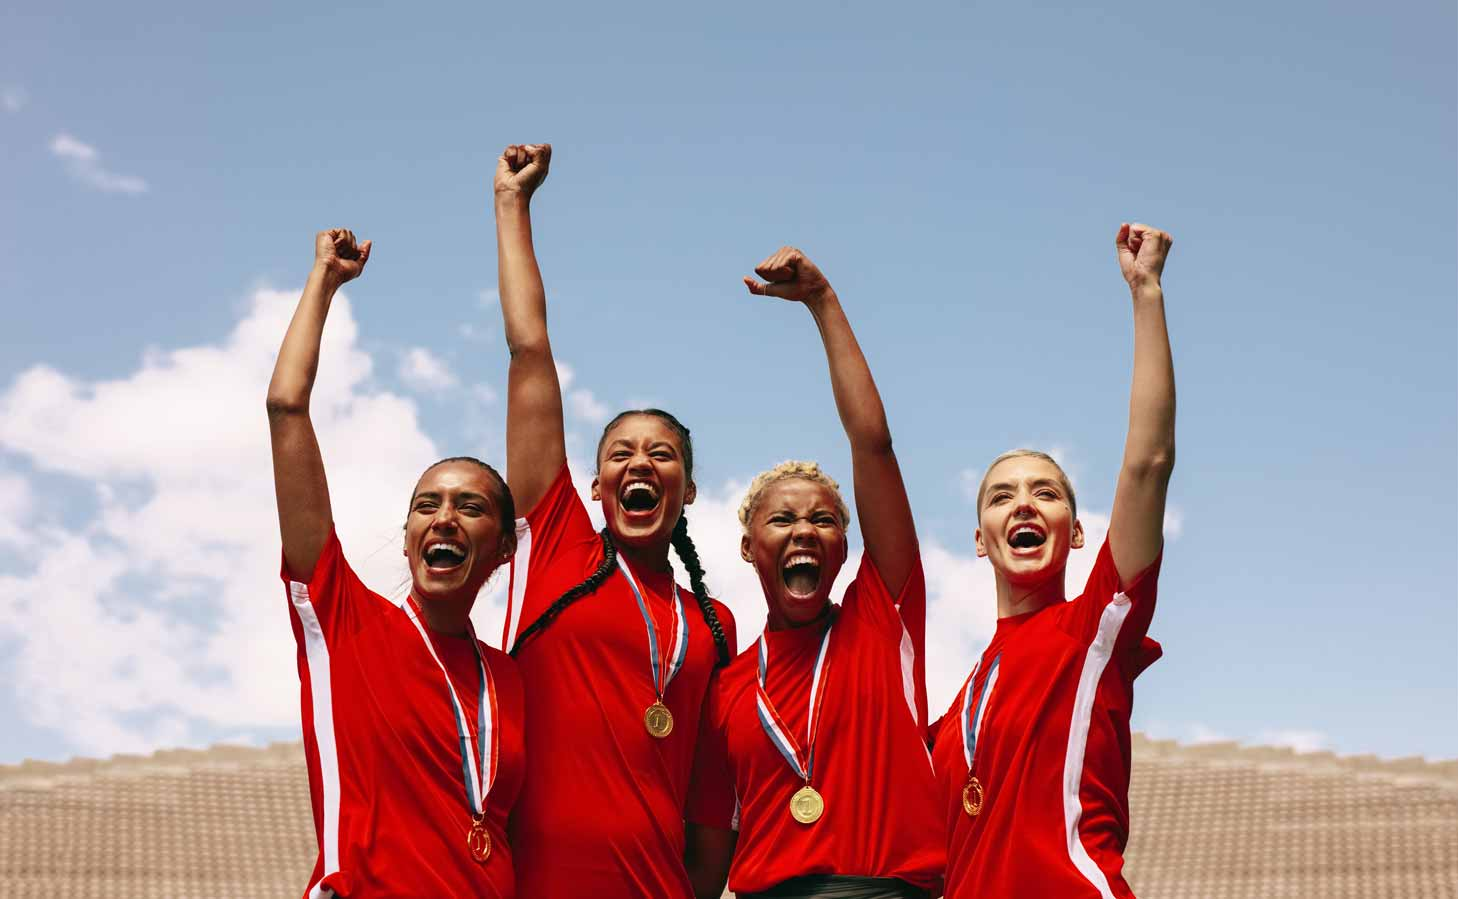 Professional female soccer players celebrating a victory